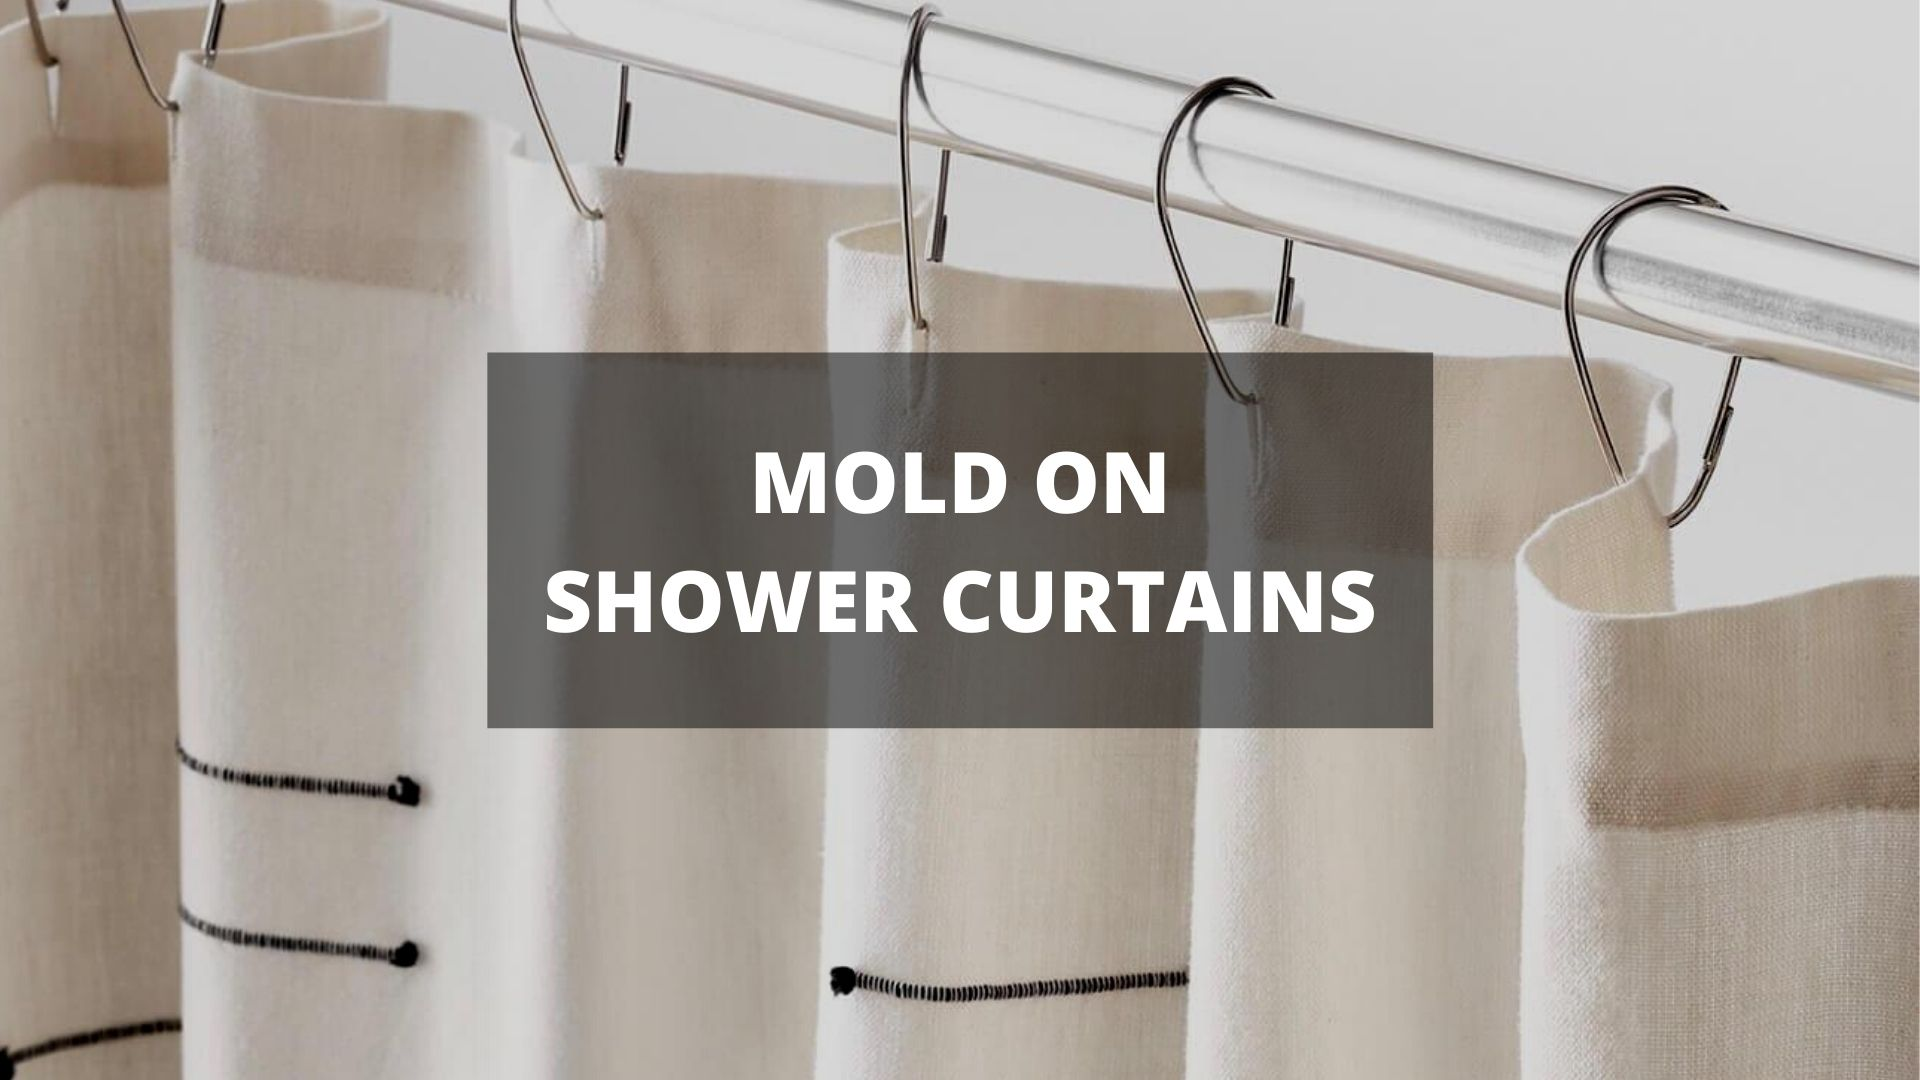 how to remove mold from shower curtains